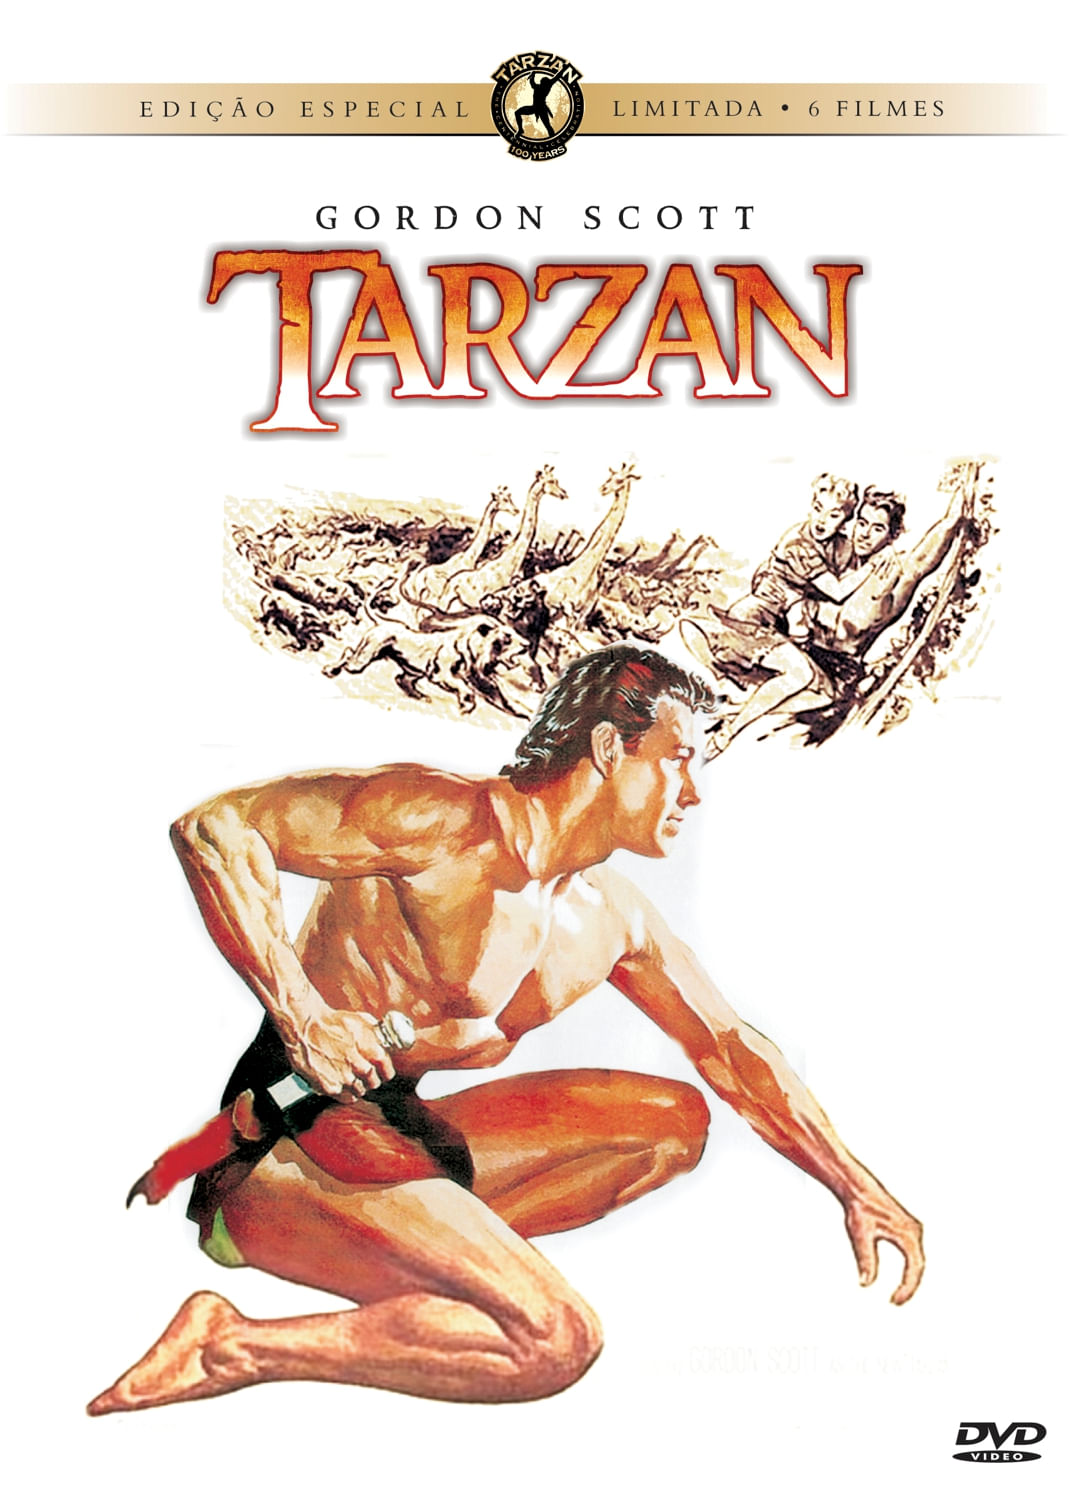 TARZAN---Gordon-Scott---luva